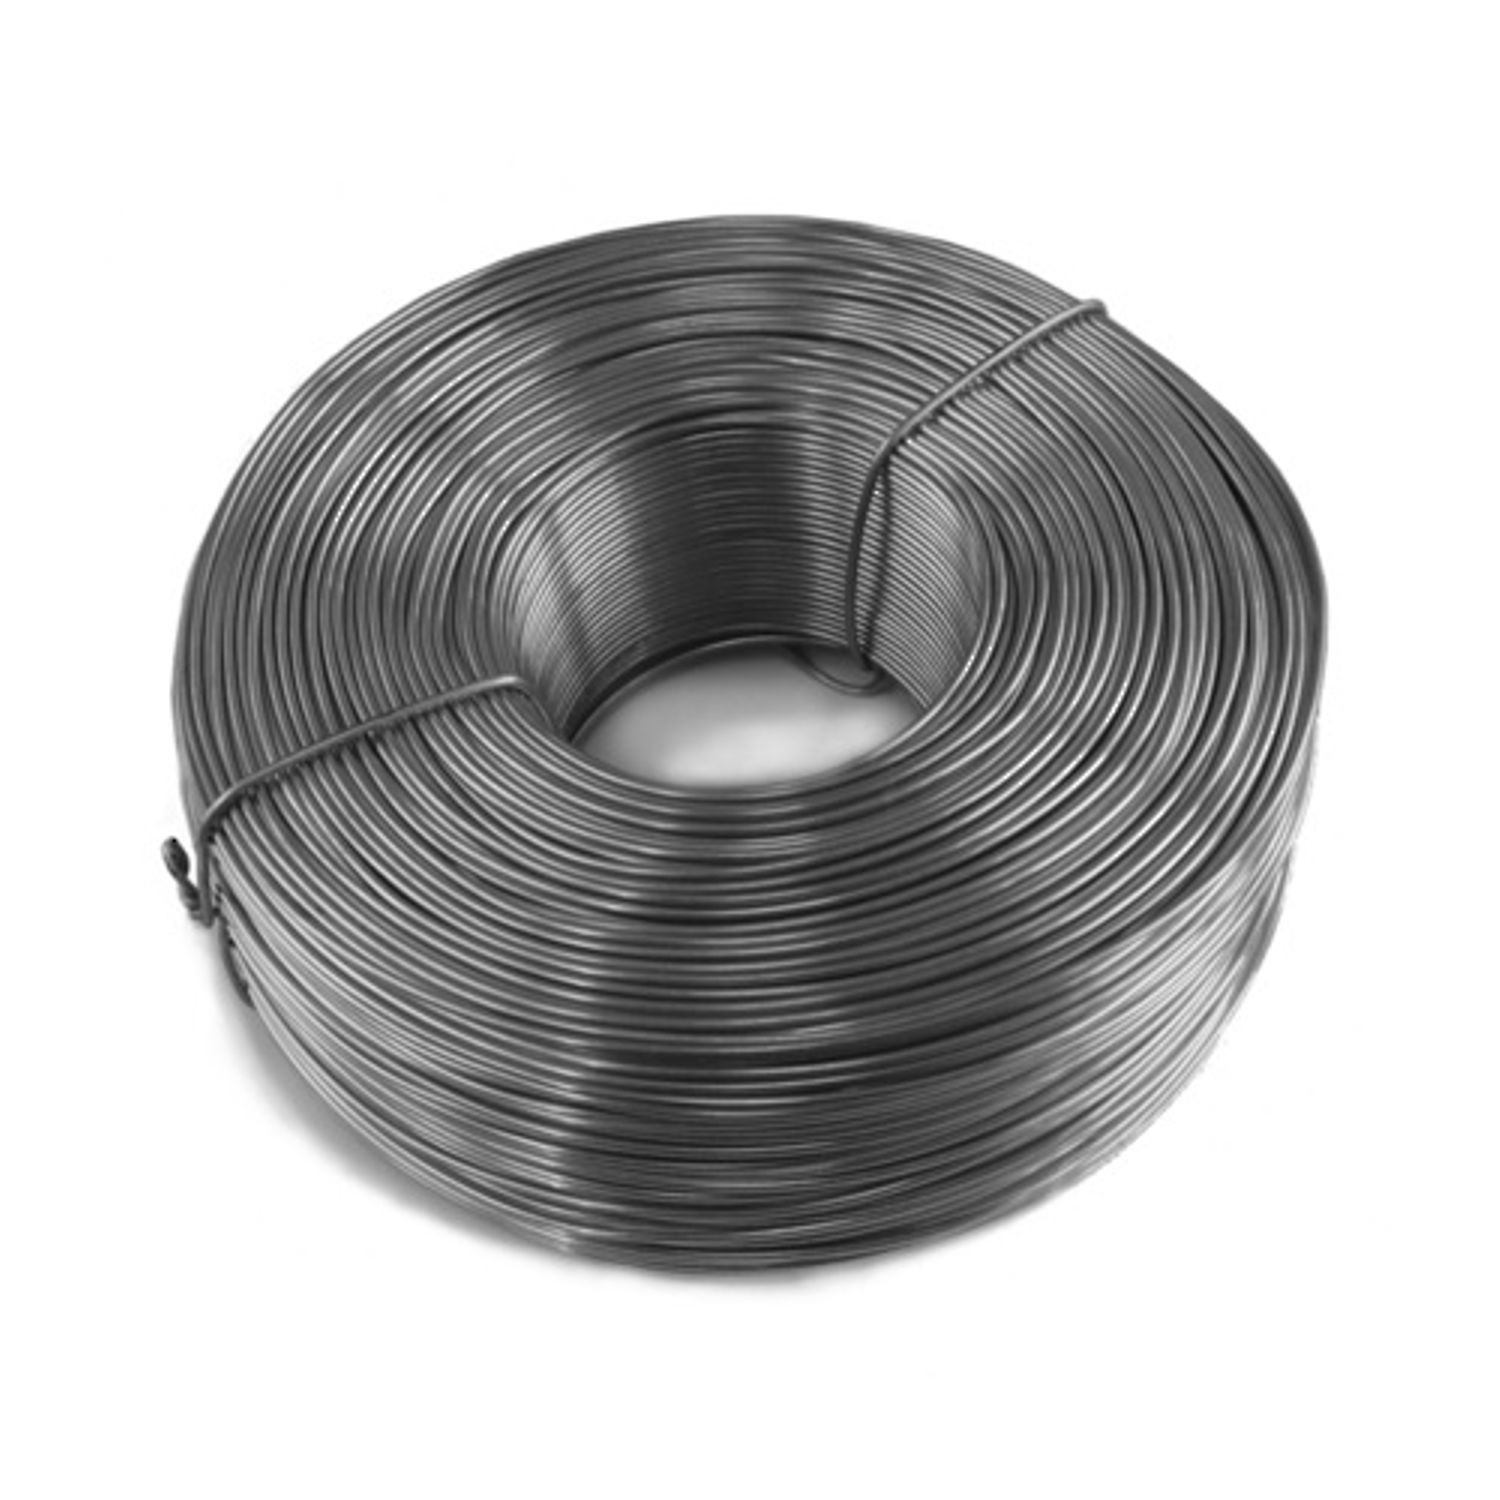 Cully, Tie Wire, #4 AWG, 16-1/2 ga, 450 ft, Galvanized | State Electric